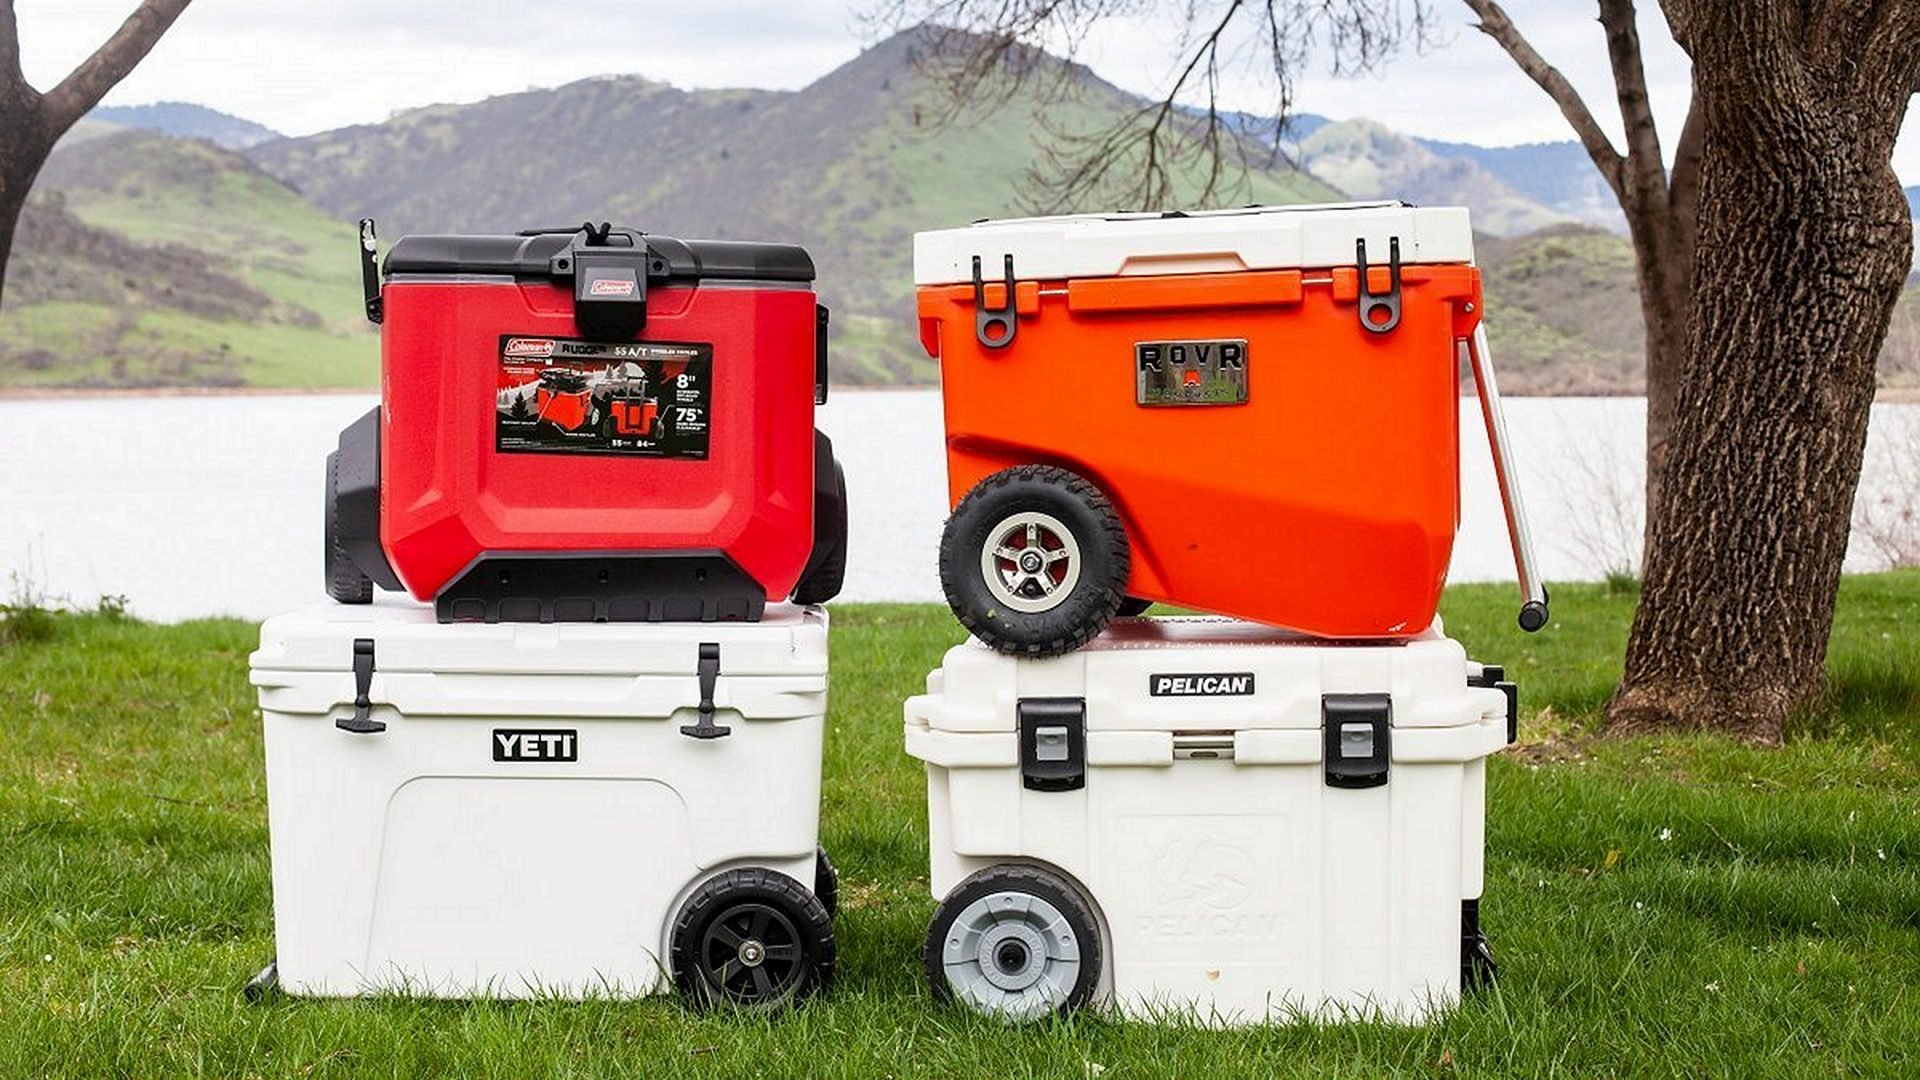 4 Roto-molded Coolers